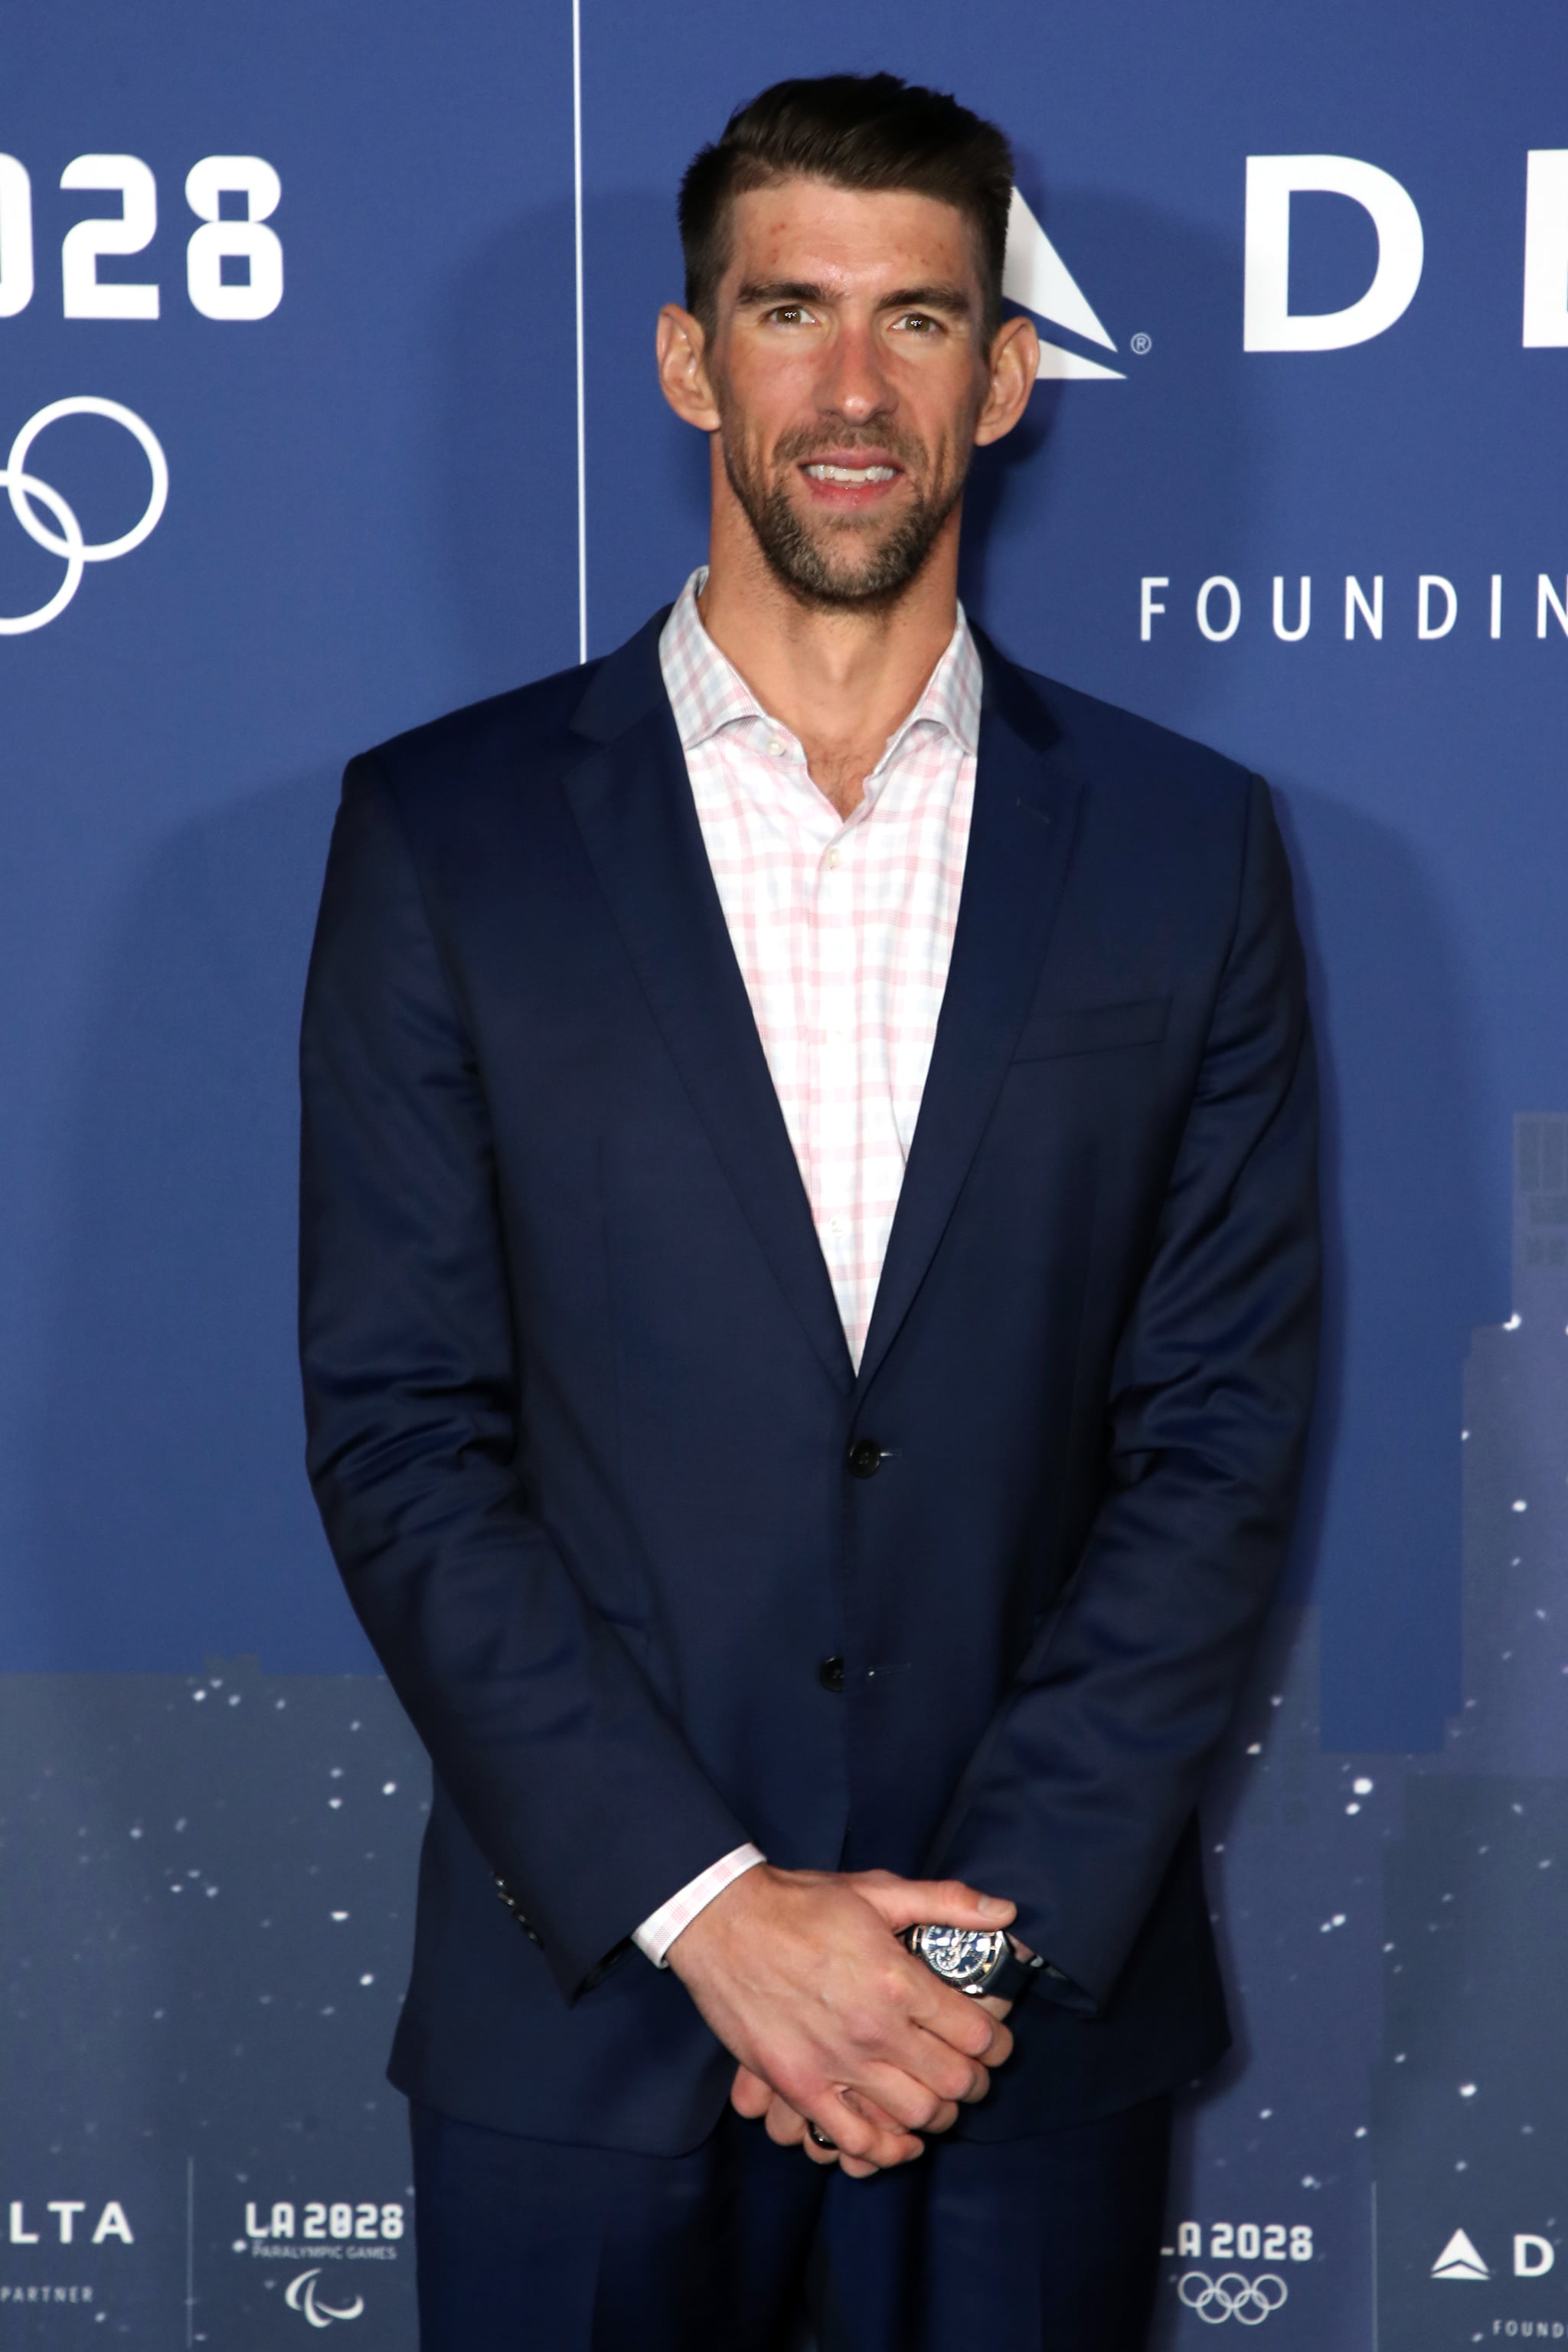 LOS ANGELES, CALIFORNIA - MARCH 02: US Olympian Michael Phelps poses at the event to announce the Founding Partnership between Delta Air Lines and LA28 at Griffith Observatory on March 02, 2020 in Los Angeles, California. (Photo by Joe Scarnici/Getty Images for LA28)